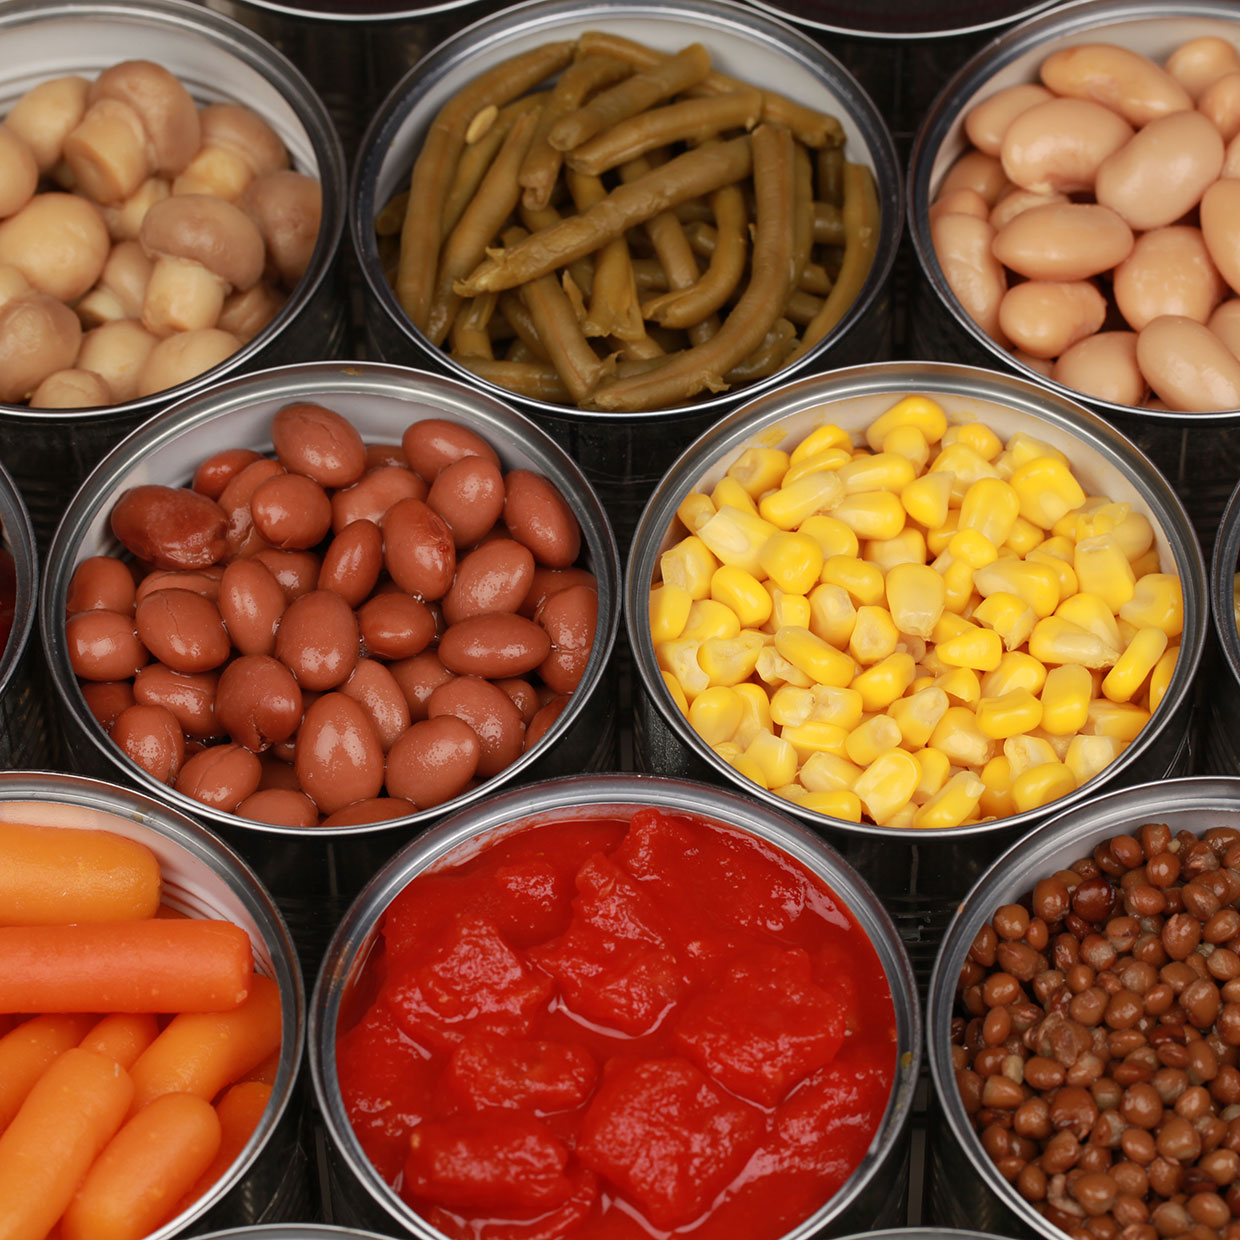 a group of opened cans of food containing fruits vegetables and legumes